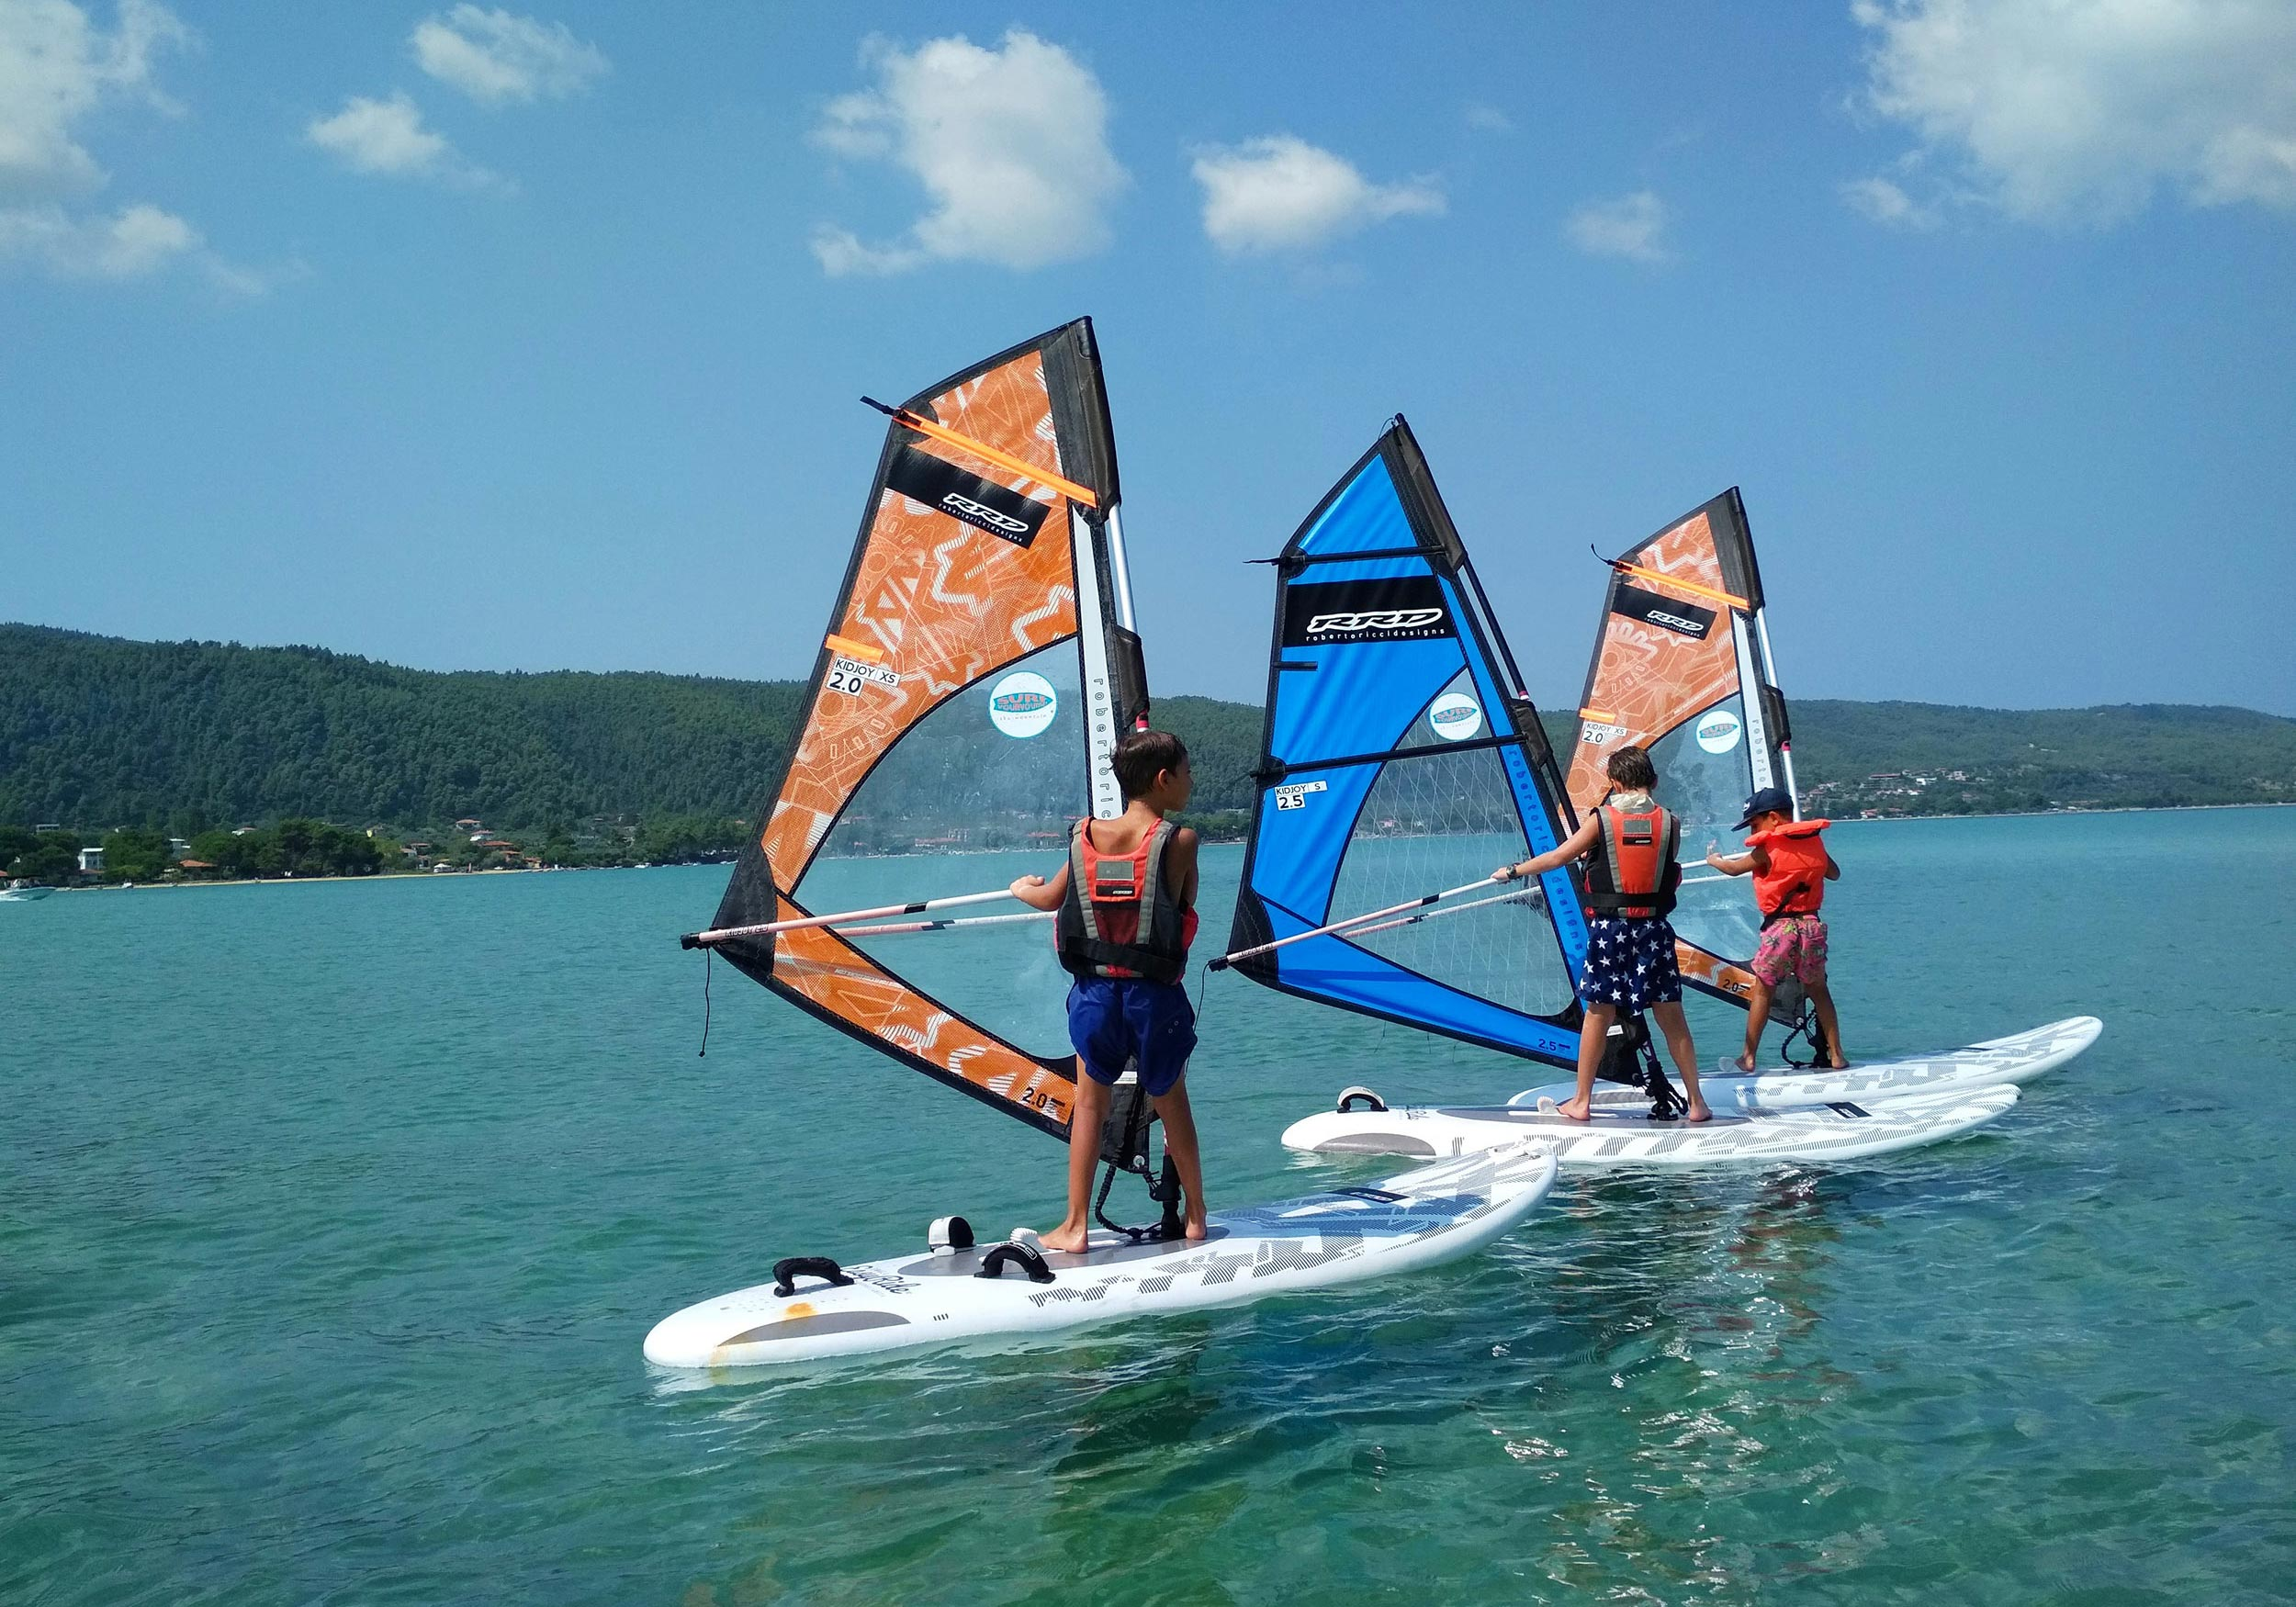 Three children learning to windsurf